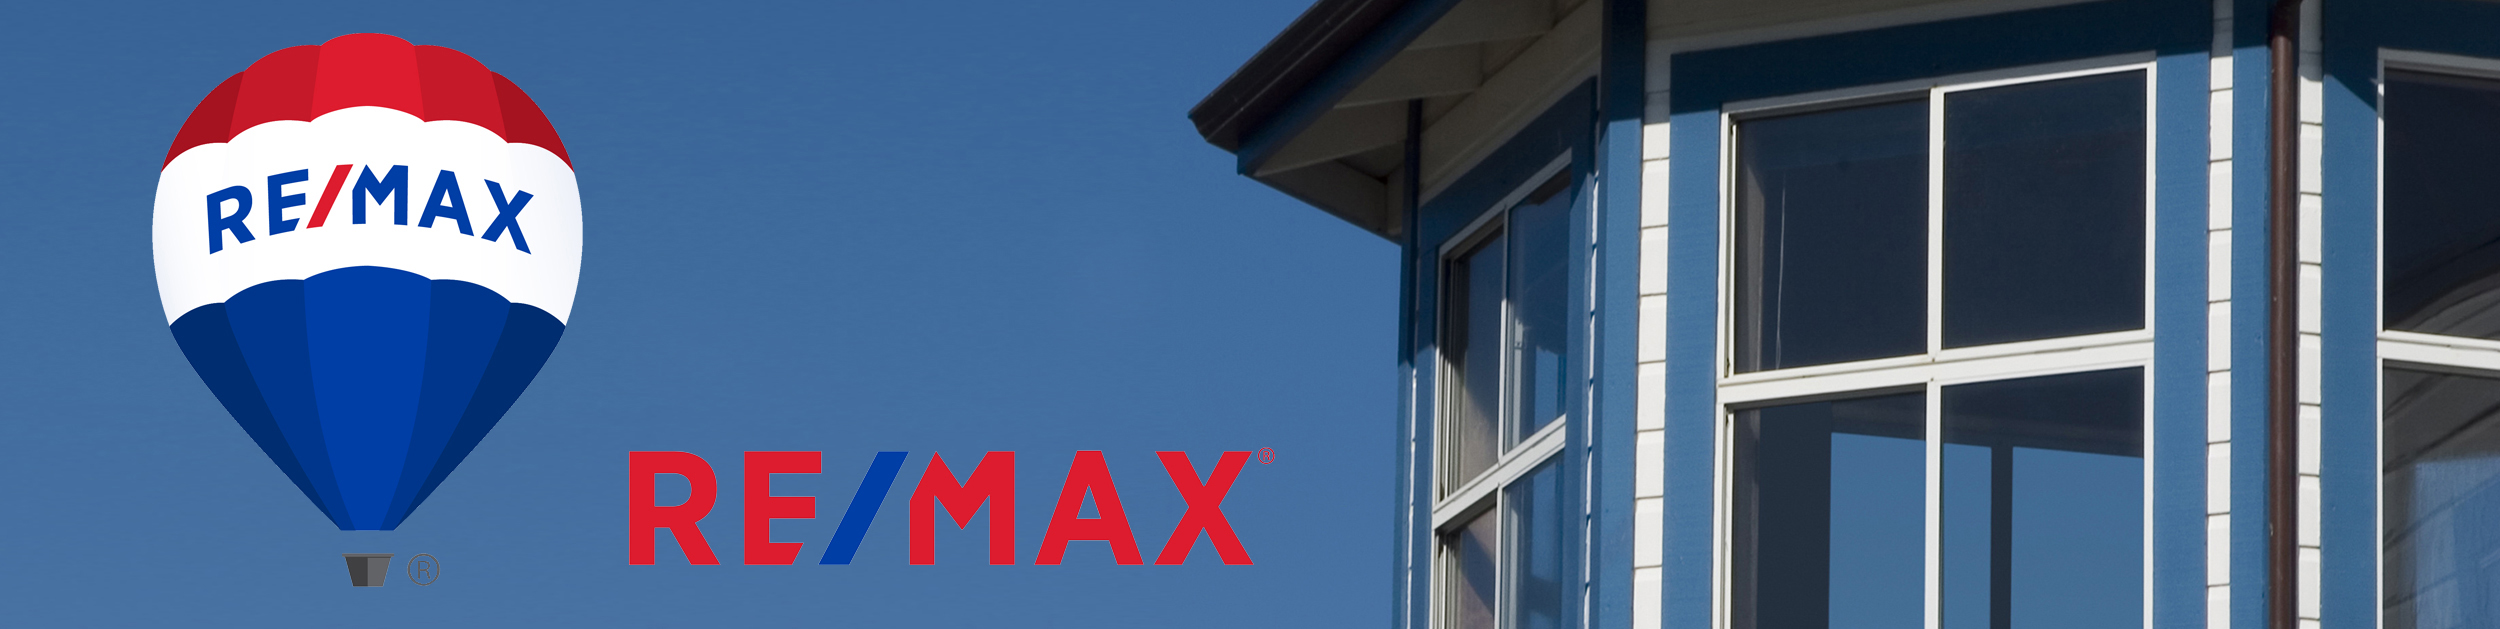 section of windows on blue home shown with white trim and REMAX balloon and word logo to the left